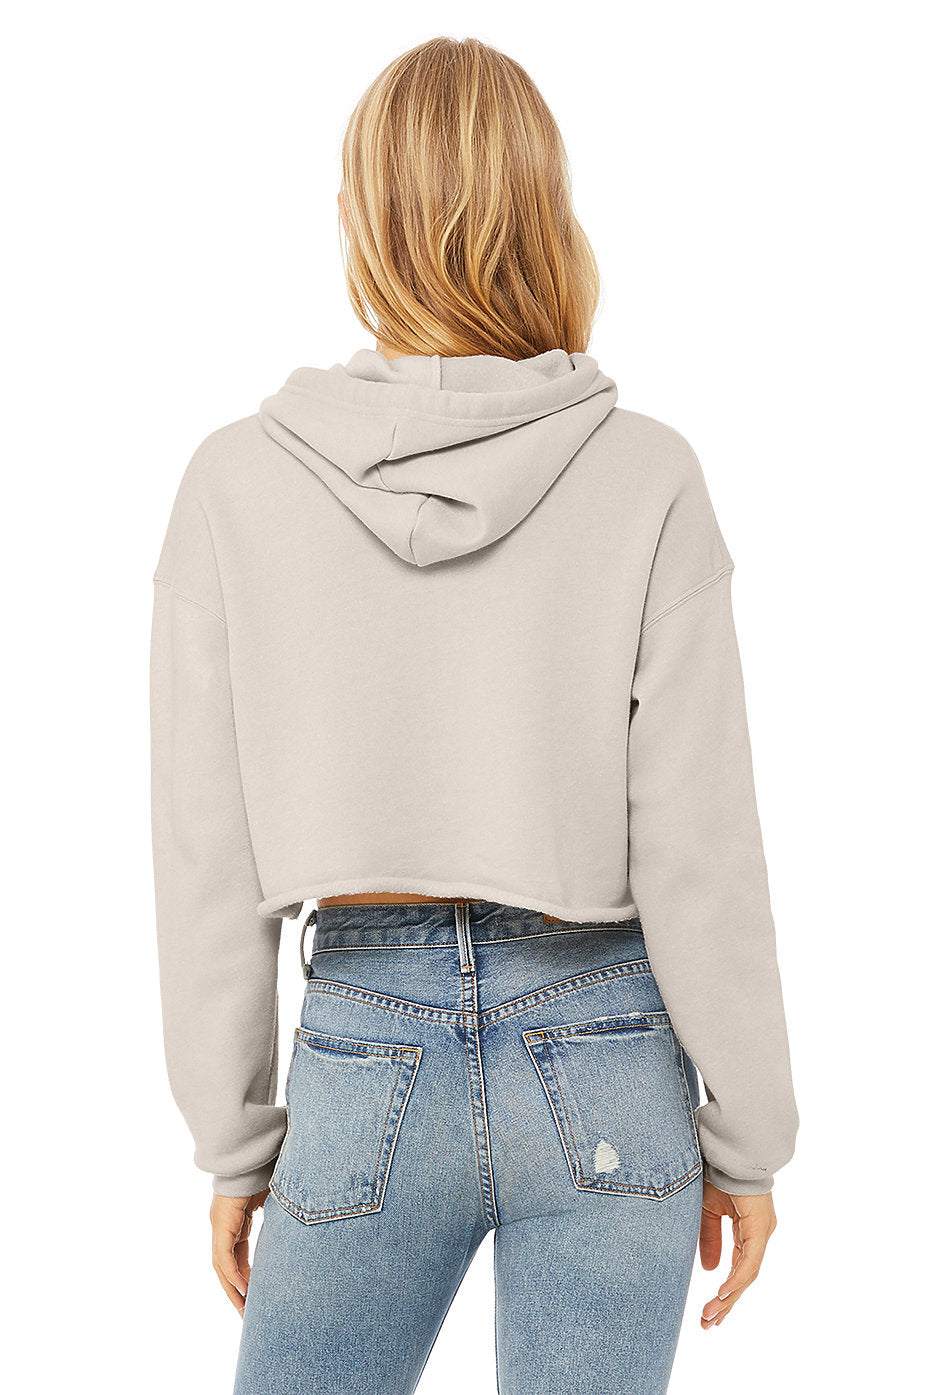 Immigrant - Women's Premium Cropped Hoodie by C3